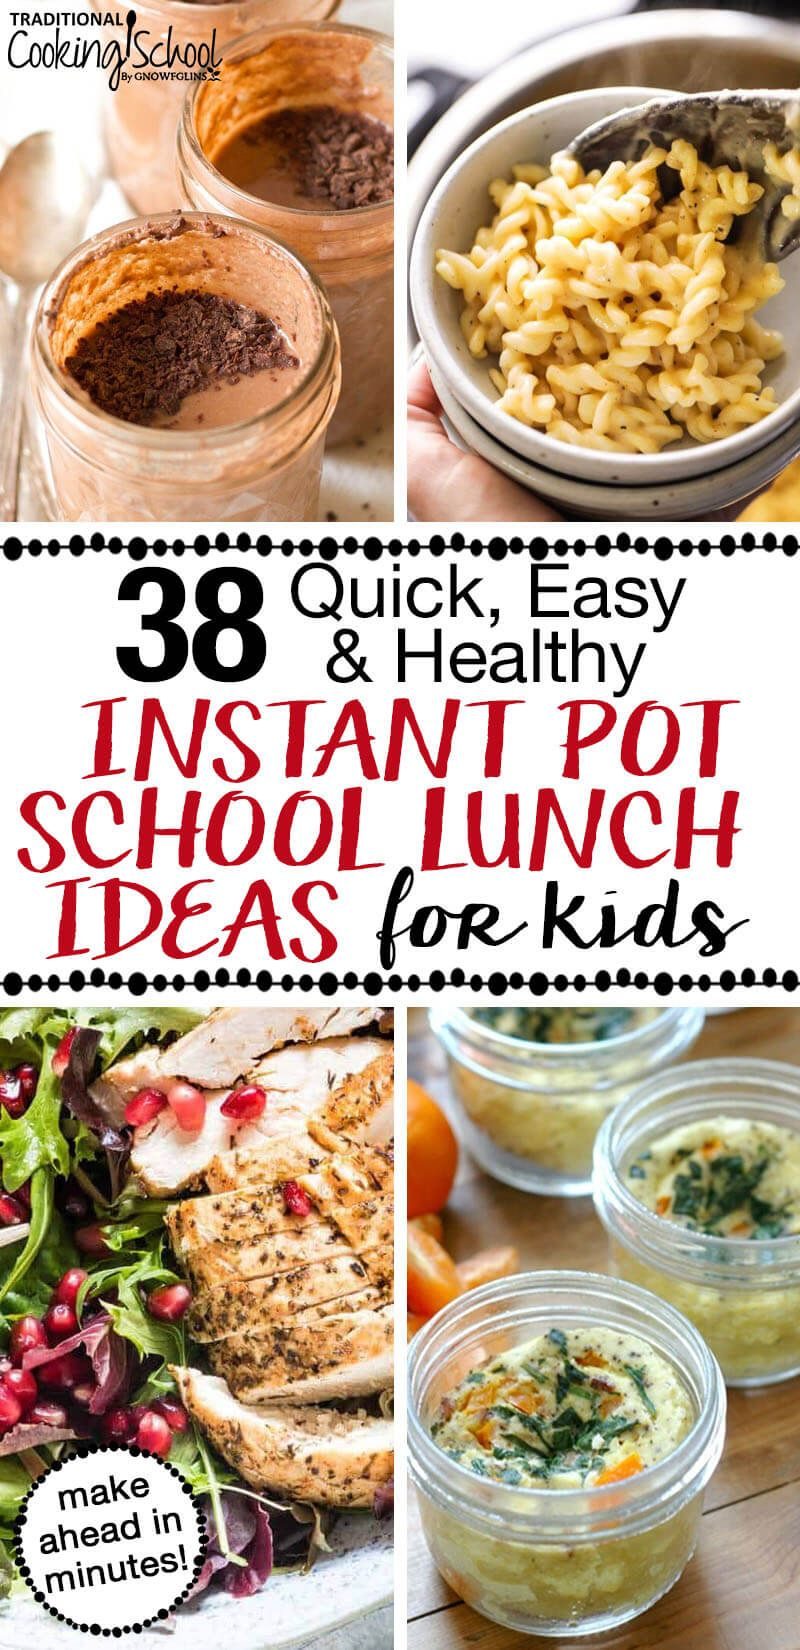 38 Quick, Easy, & Healthy Instant Pot School Lunch Ideas For Kids images